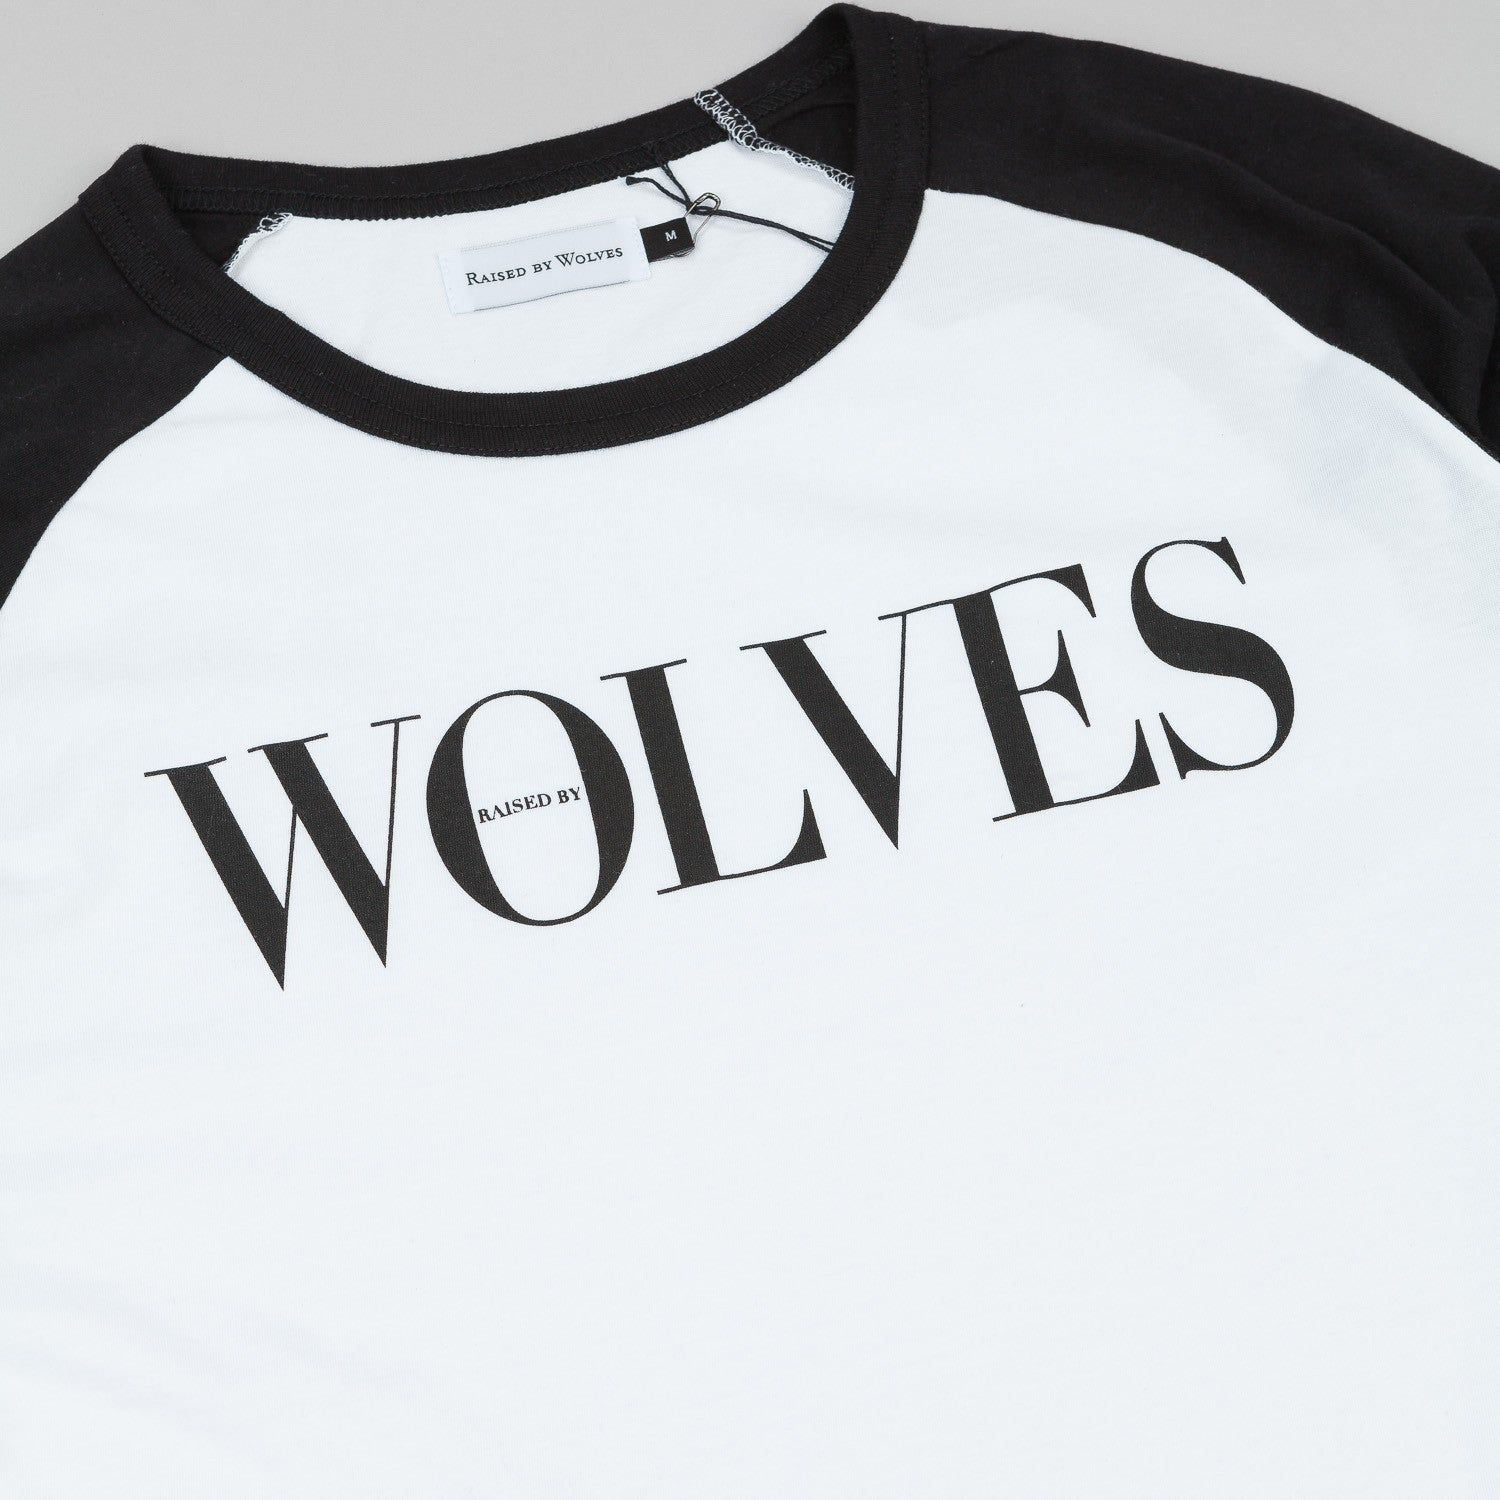 Raised By Wolves September Warm-Up 3/4 Sleeve Raglan T-Shirt - White / Black